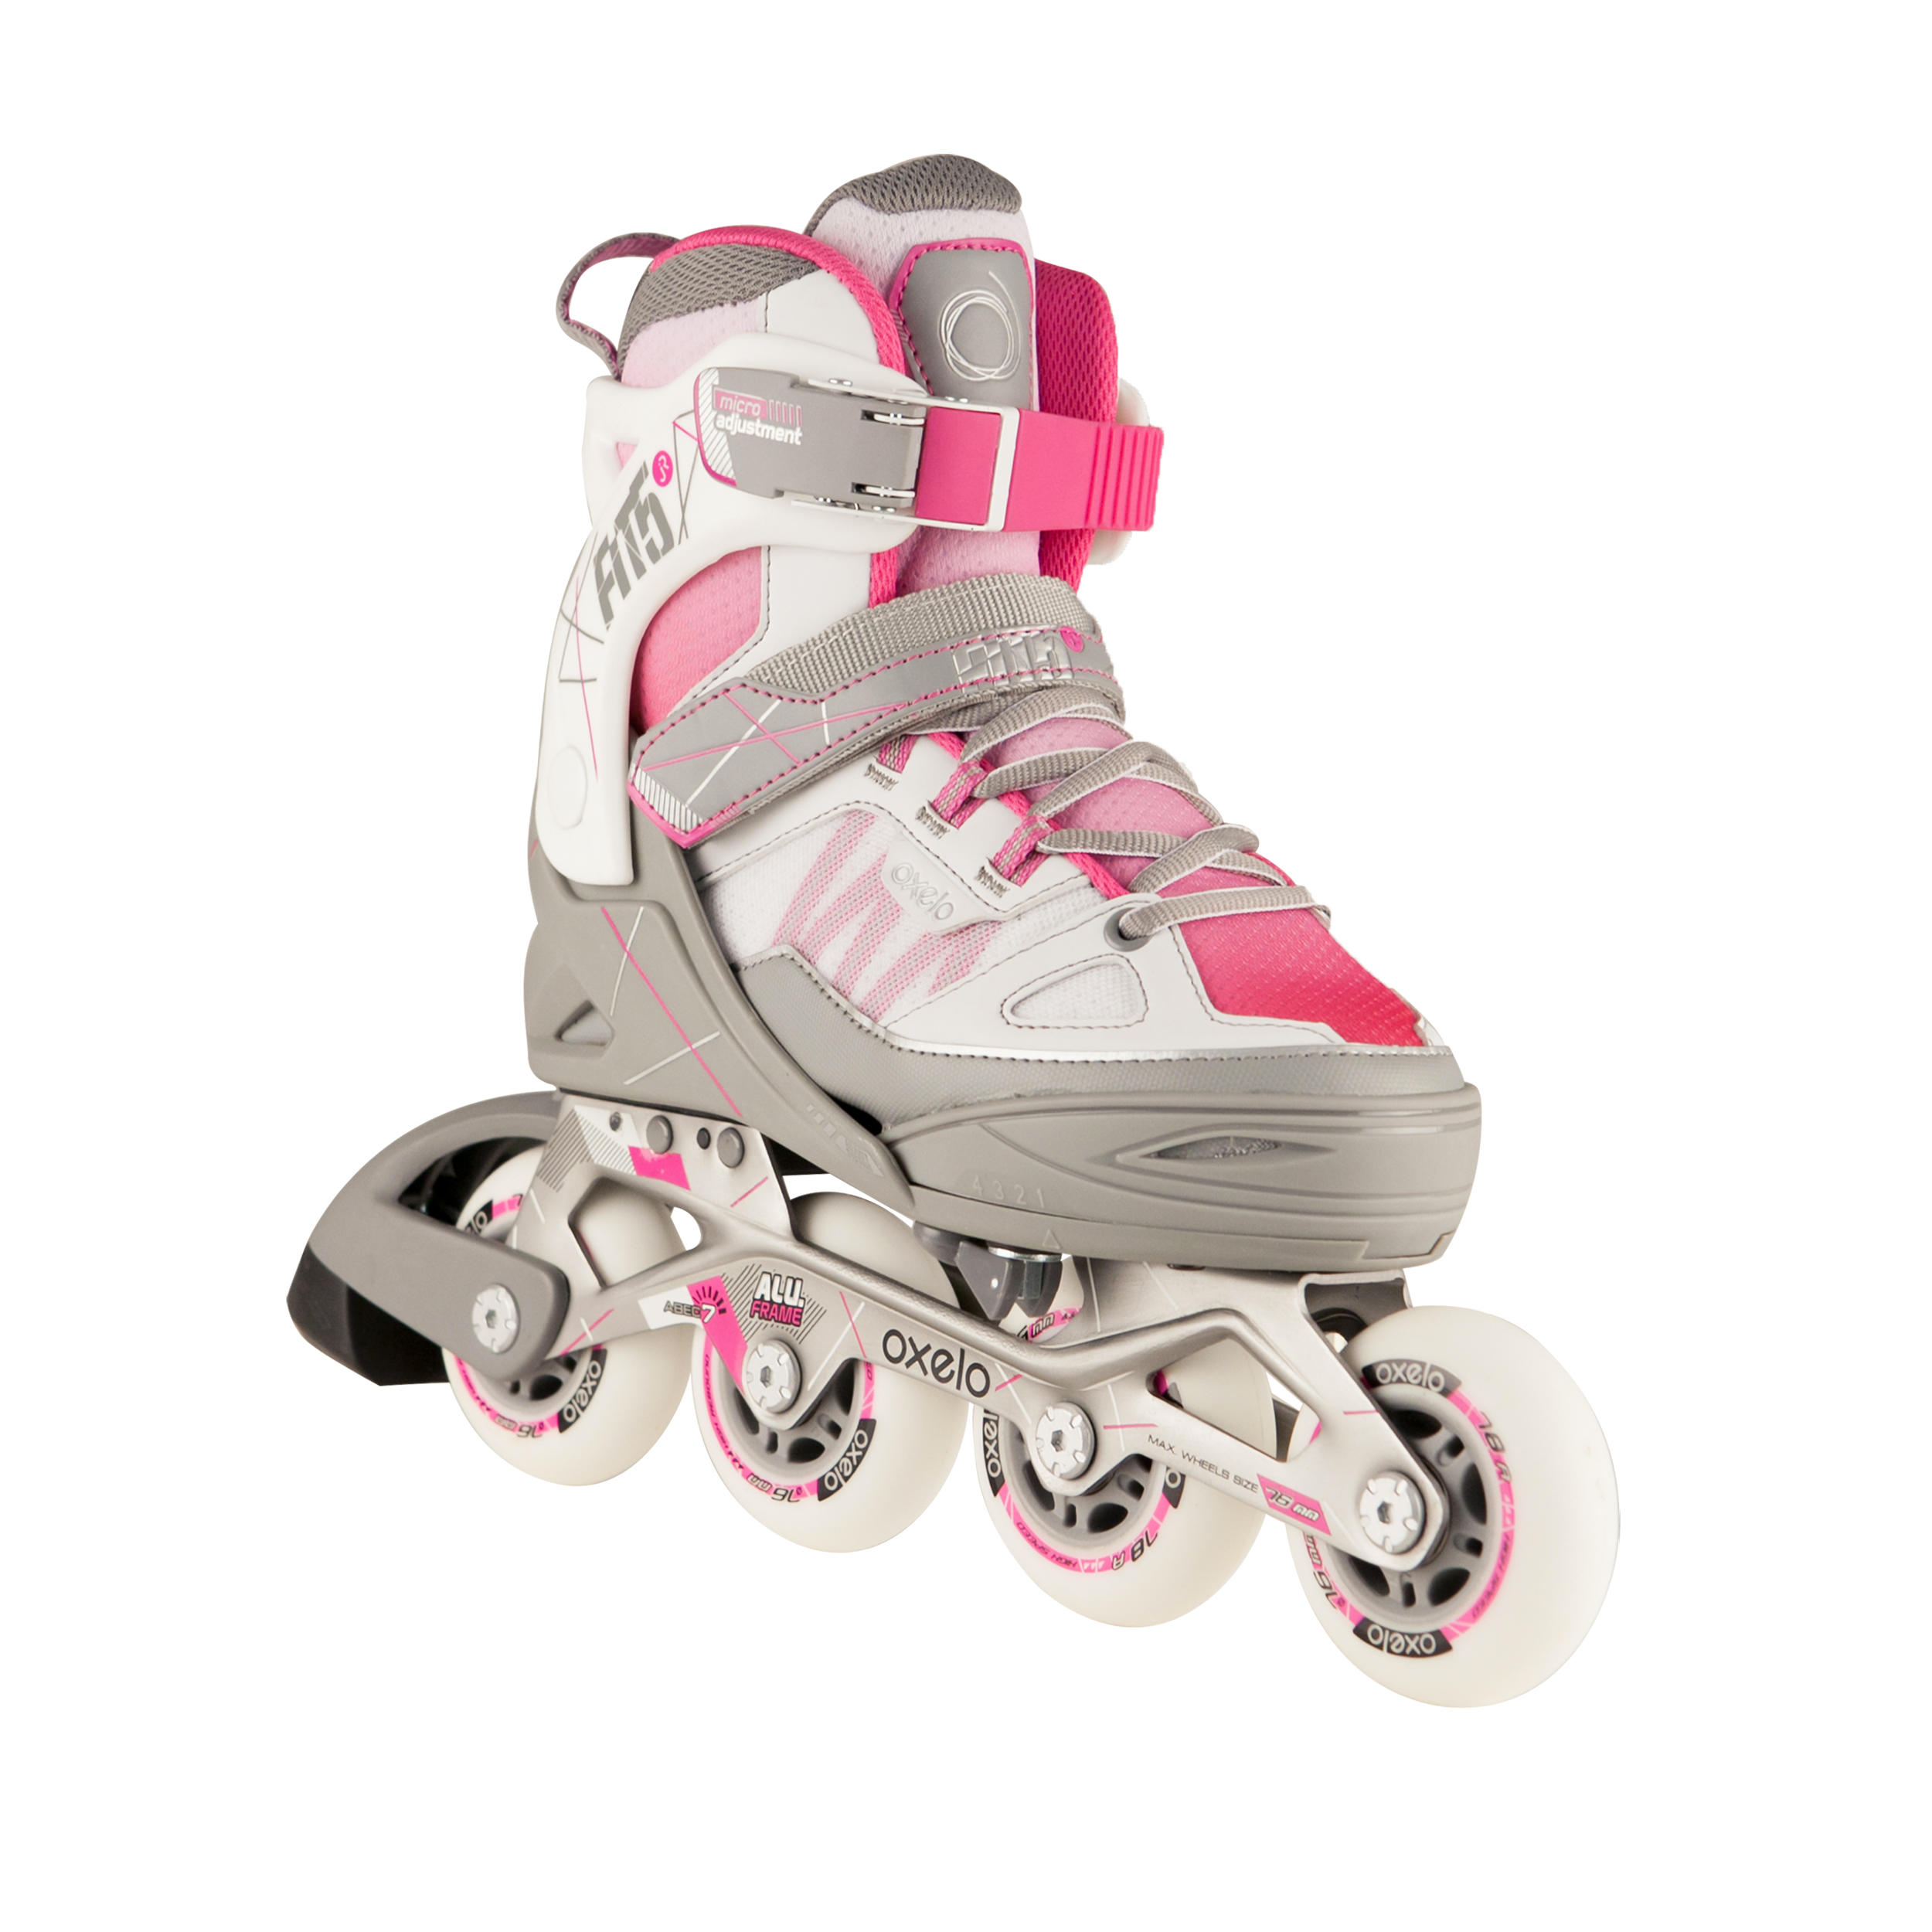 Fit 5 Kids Inline Fitness Skates - Pink/White